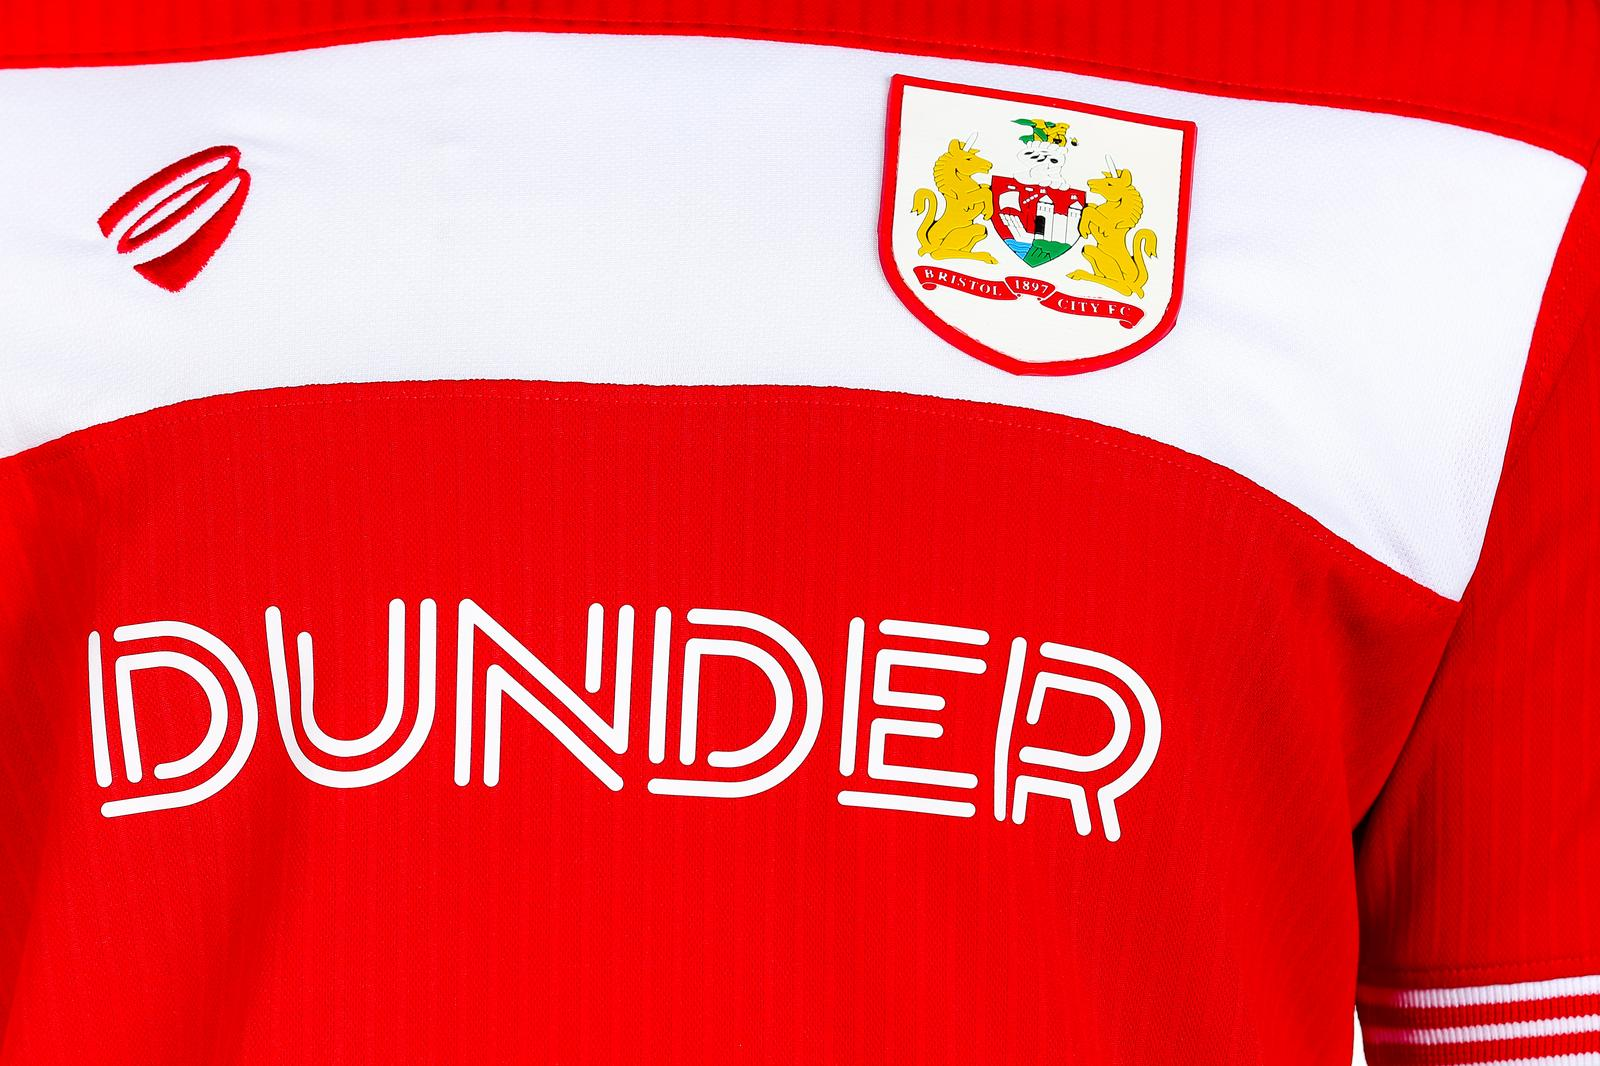 In-House Bristol City 18-19 Home   Away Kits Revealed  6056e02bc